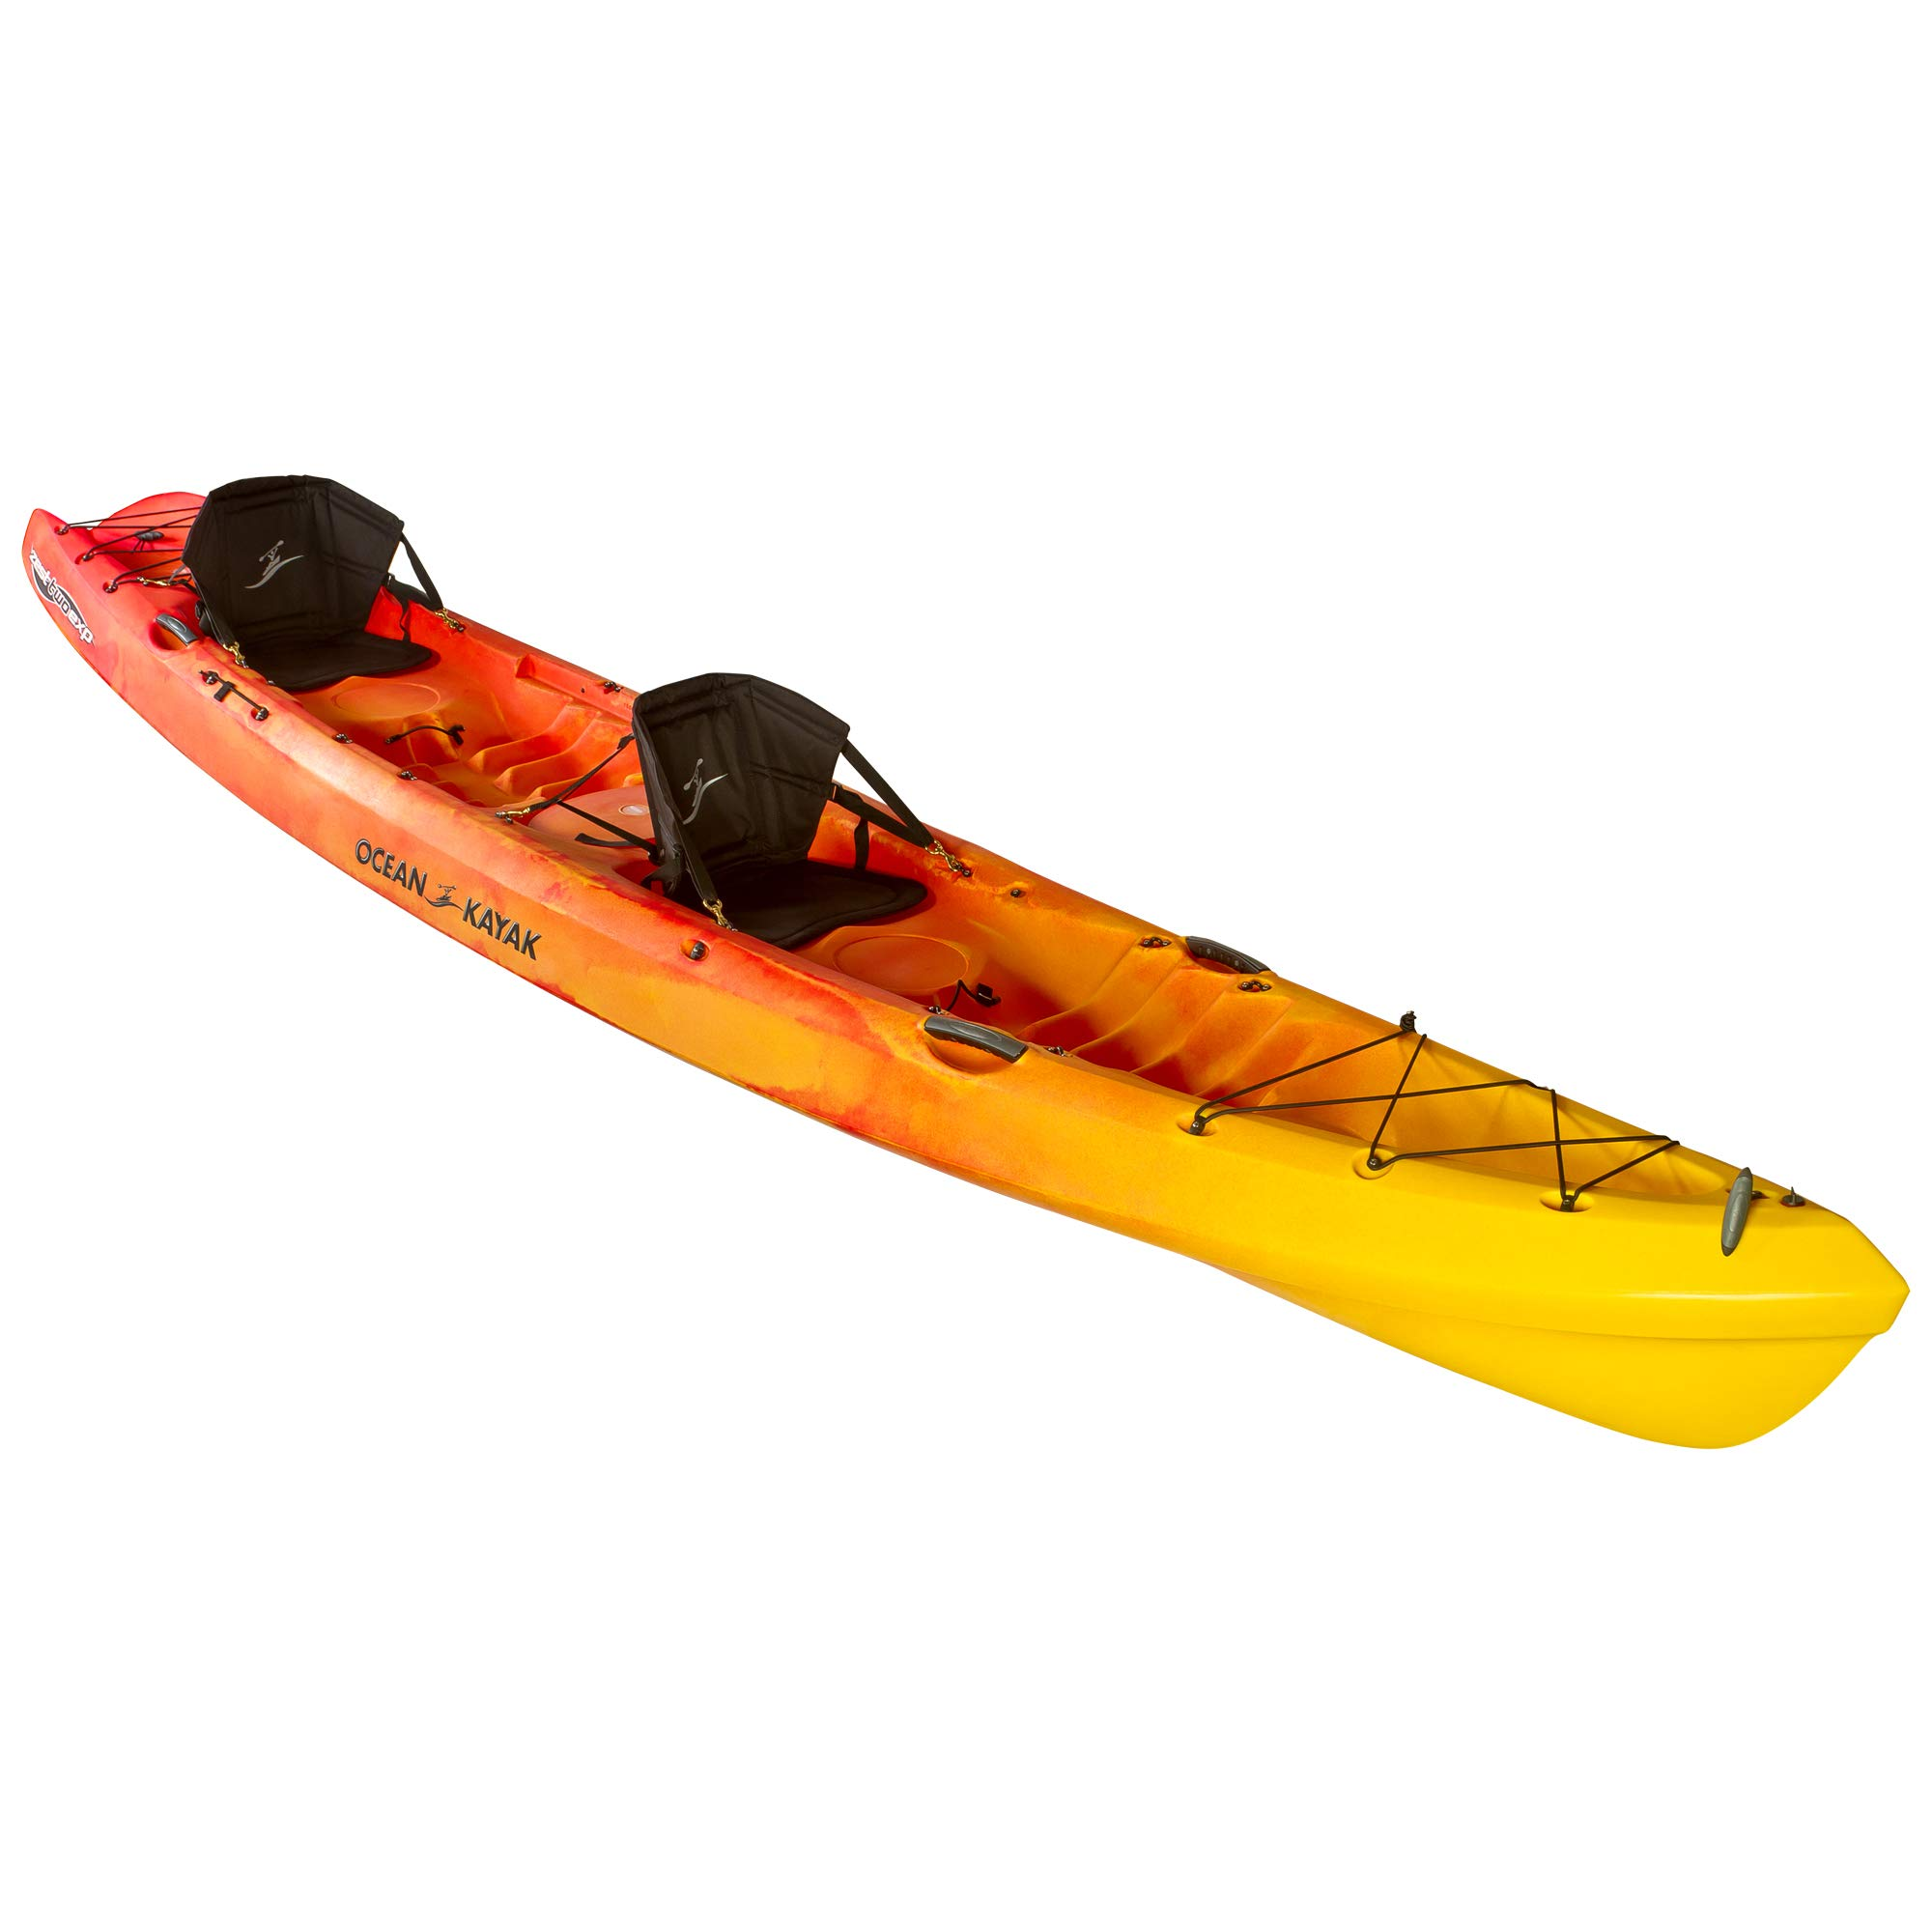 Ocean Kayak Zest Two Expedition Tandem Sit-On-Top Touring Kayak, Sunrise, 16 Feet 5 Inches by Ocean Kayak